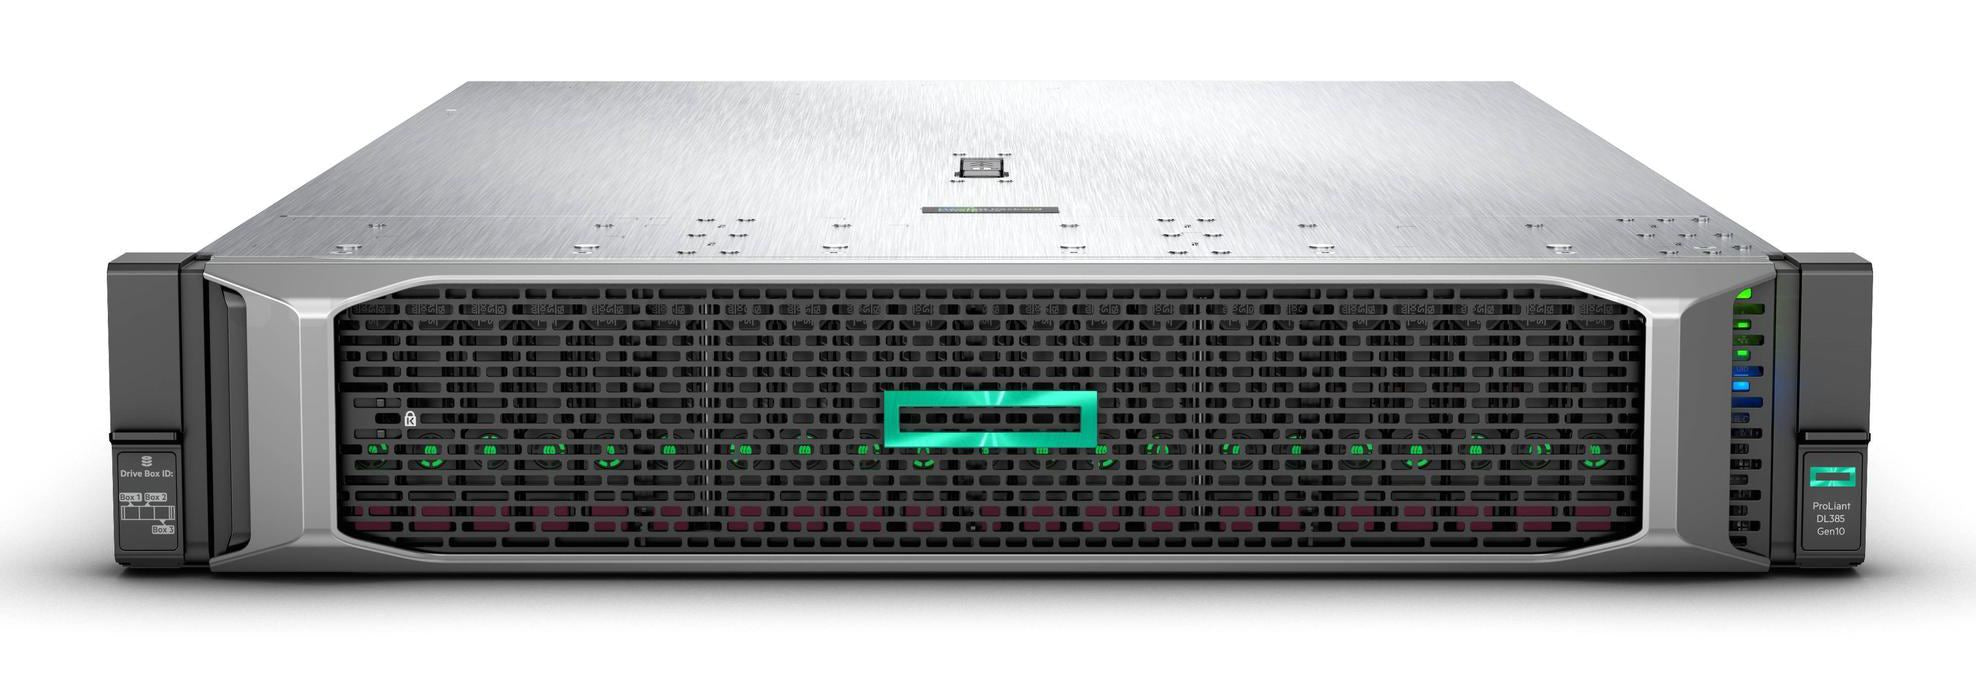 Refurbished HPE ProLiant DL385 Gen10 Configure to Order Server